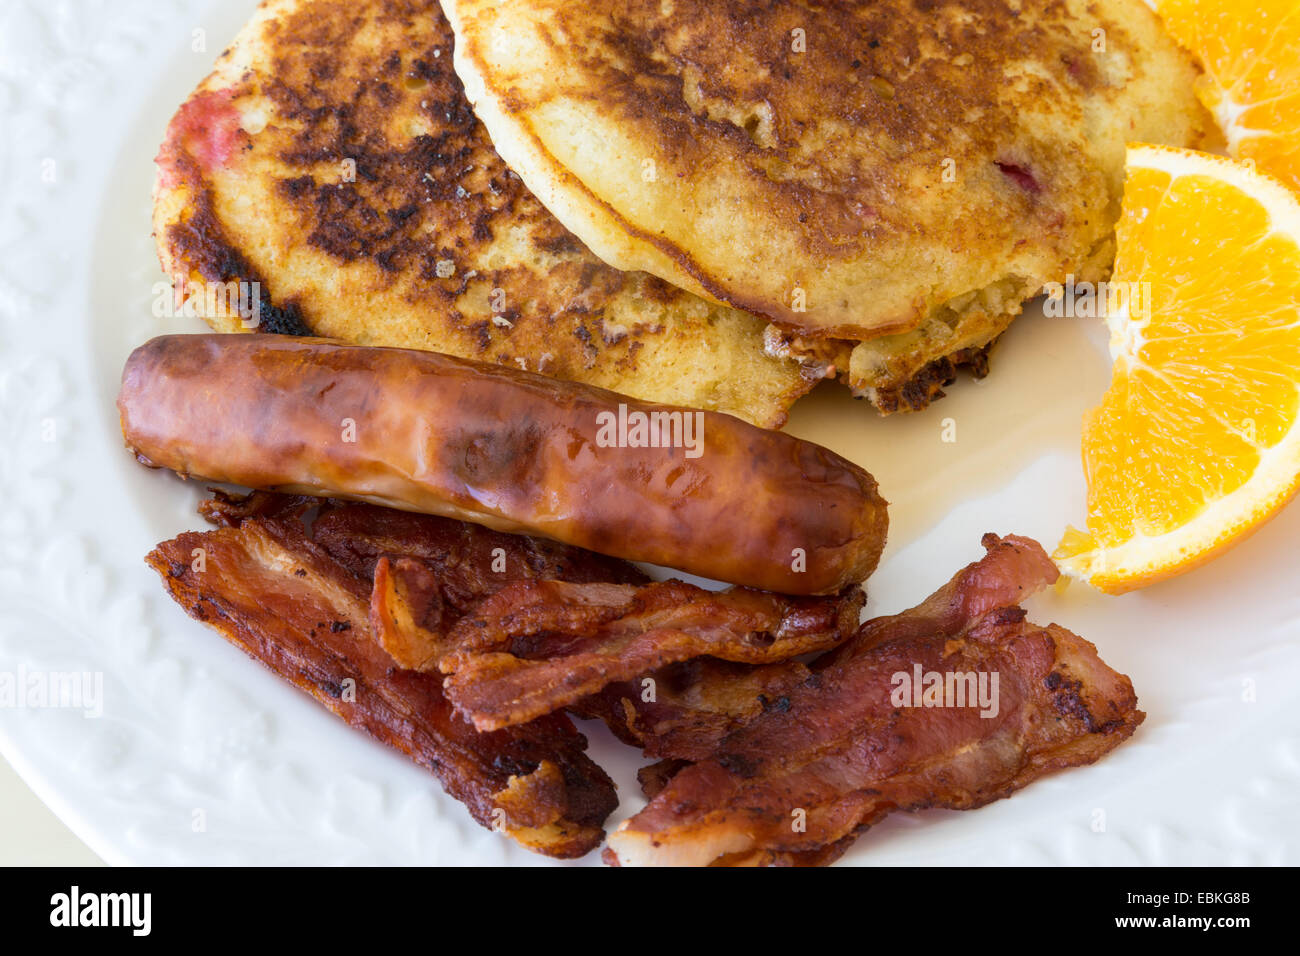 Breakfast sausage, bacon and pancakes with a slice of orange. - Stock Image